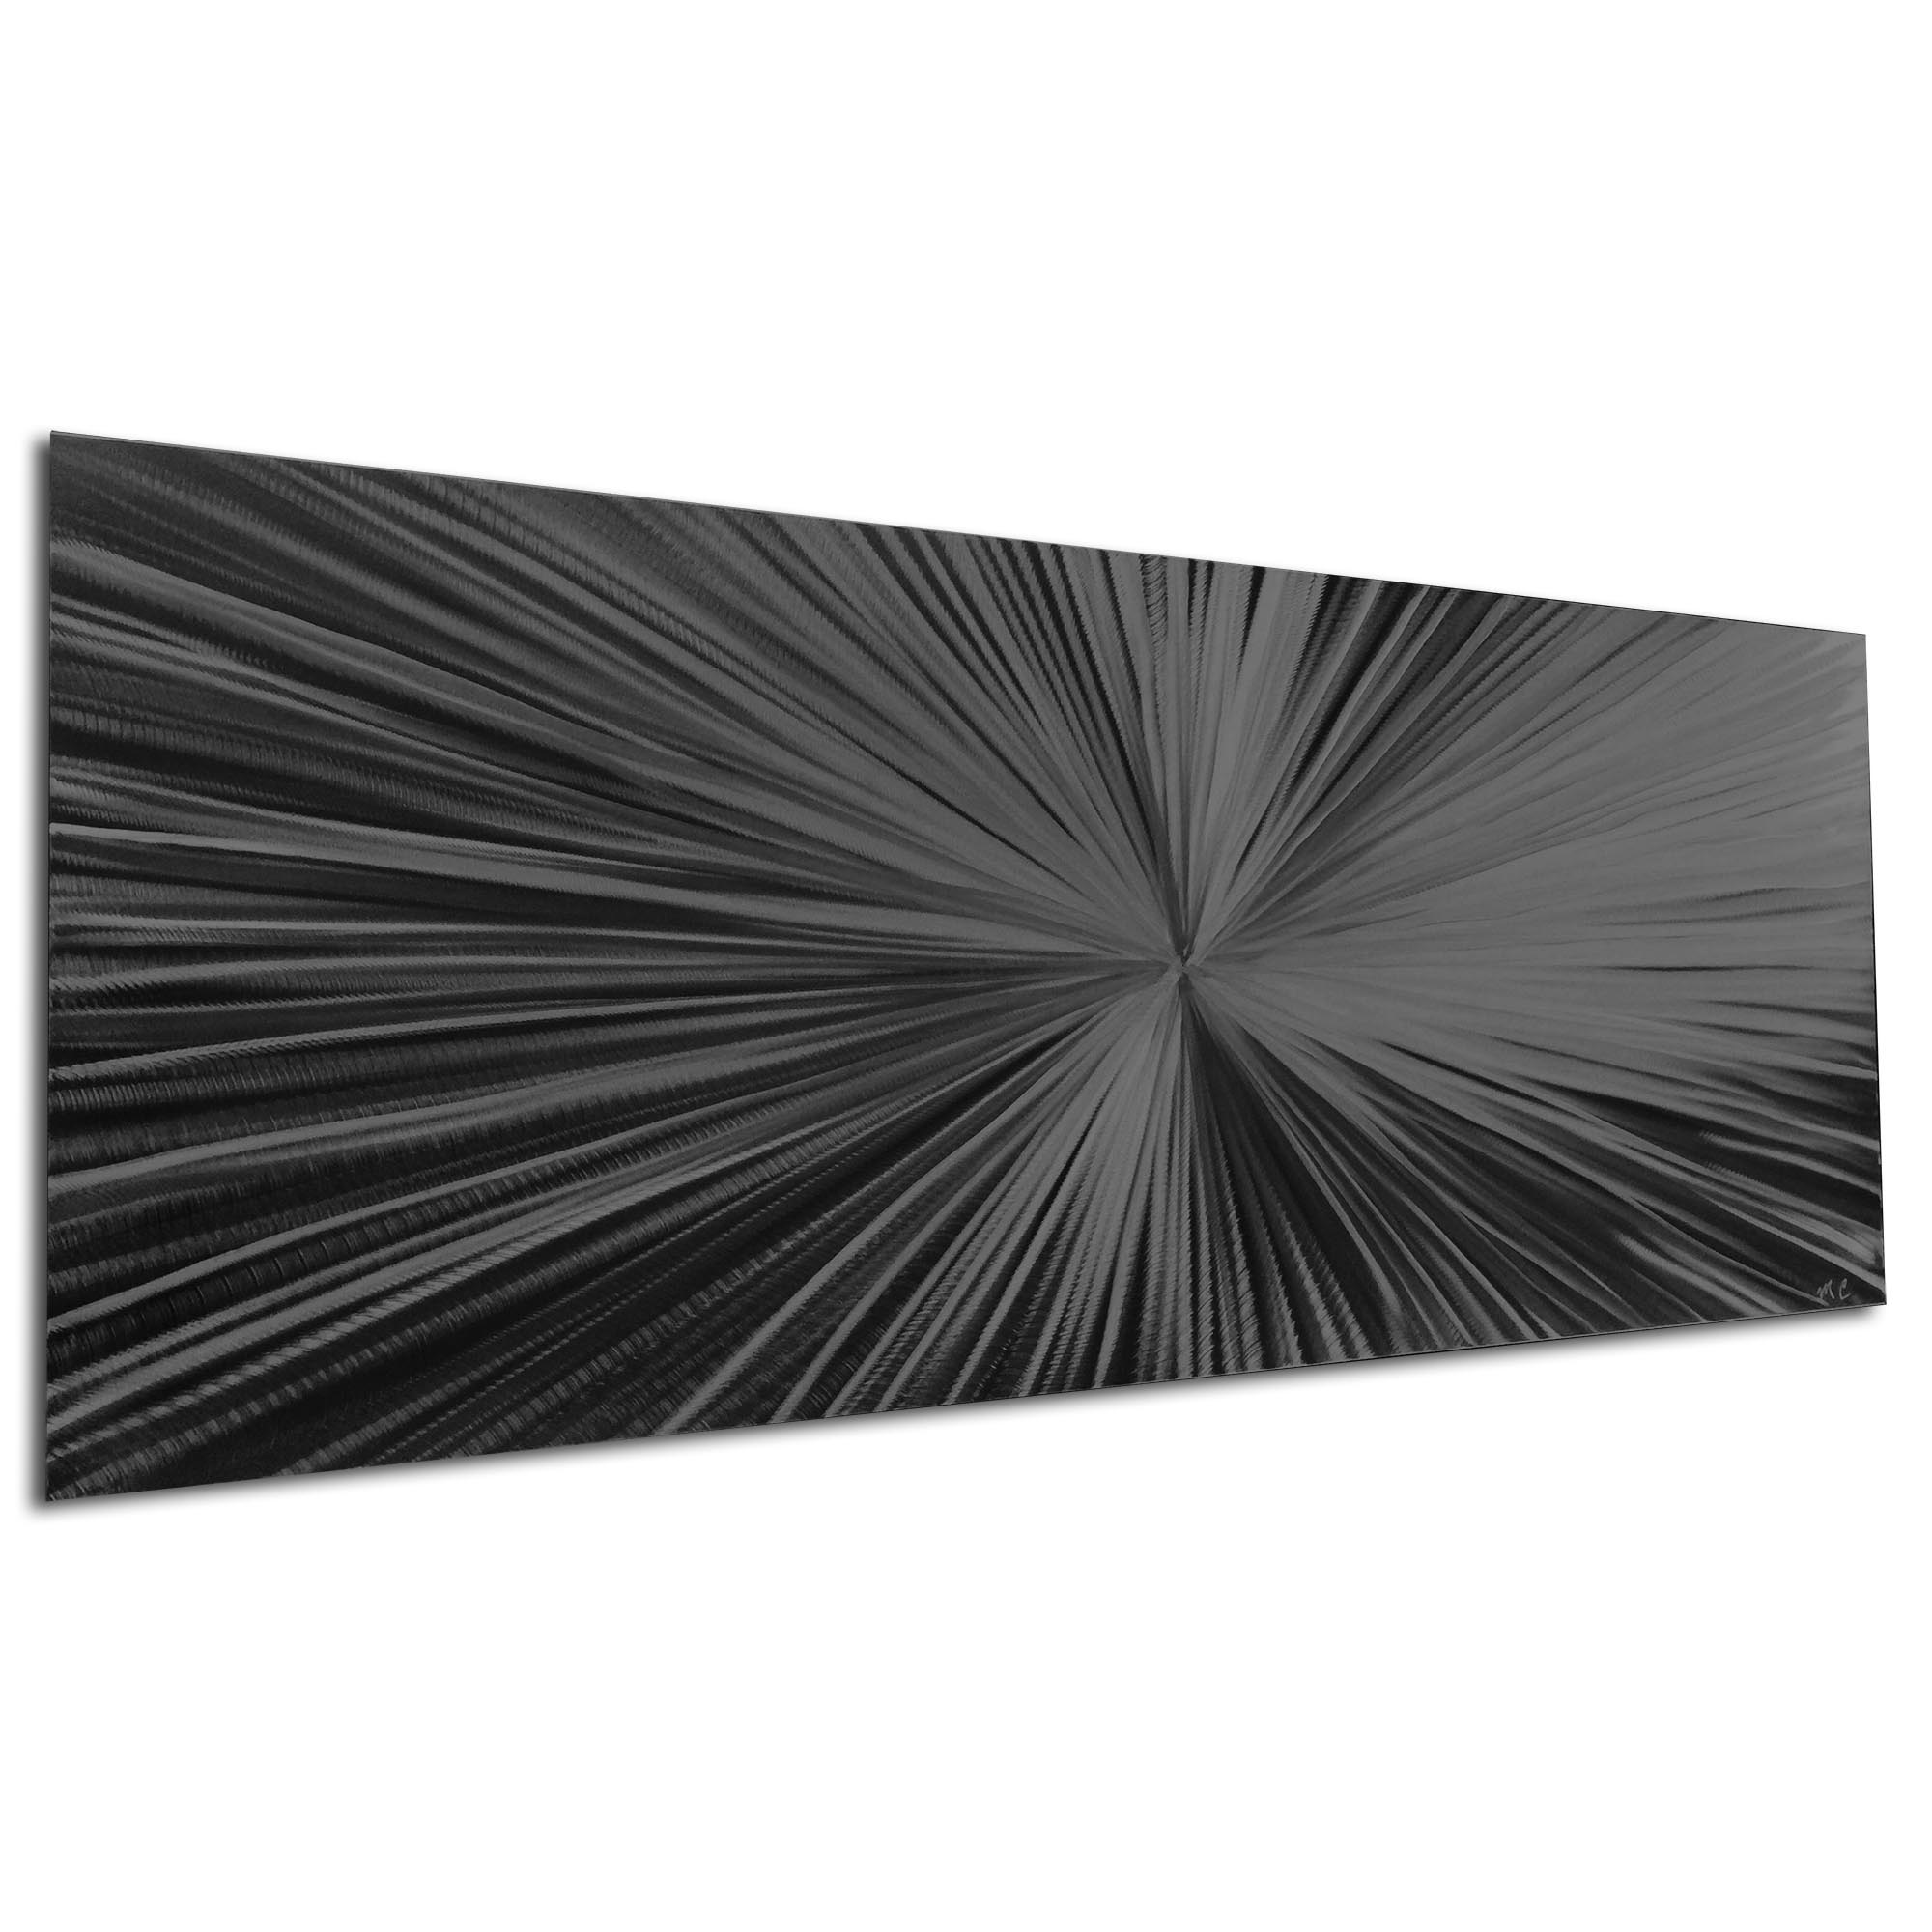 Starburst Black by Helena Martin - Original Abstract Art on Ground and Painted Metal - Image 3